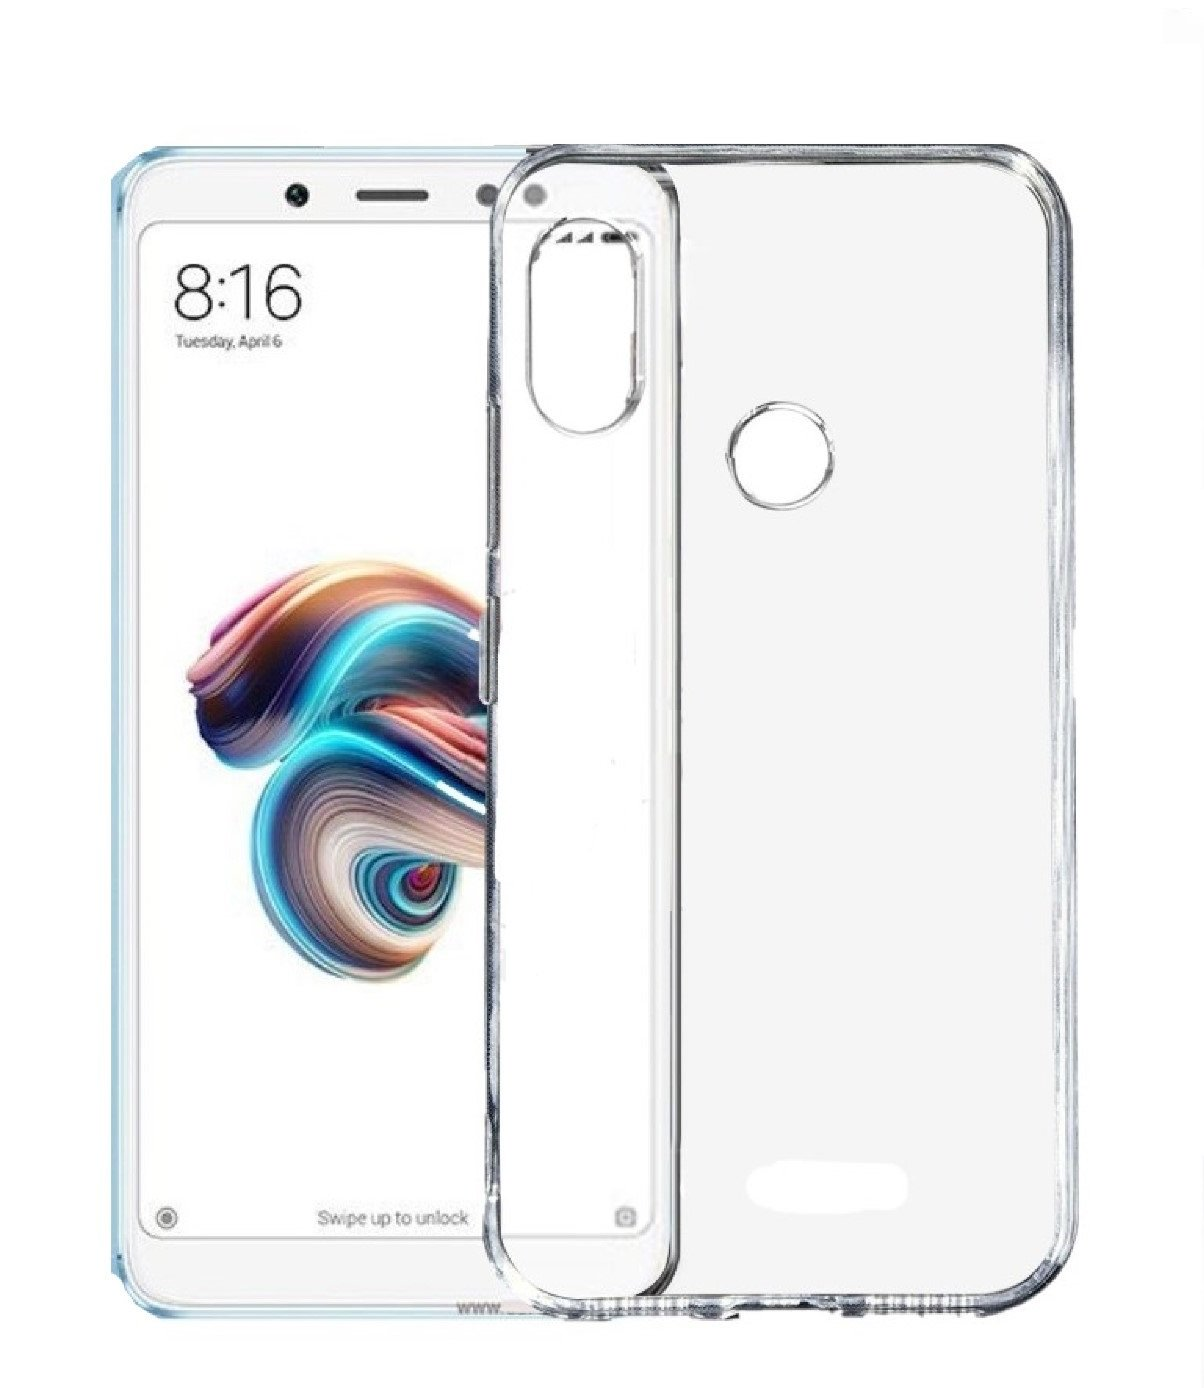 Parallel Universe Xiaomi Redmi Note 5 Pro Back Cover Case Ultra Ipaky Carbon Fiber Matte For Clear Compact Fit Soft Shock Absorbing Tpu Transparent Electronics